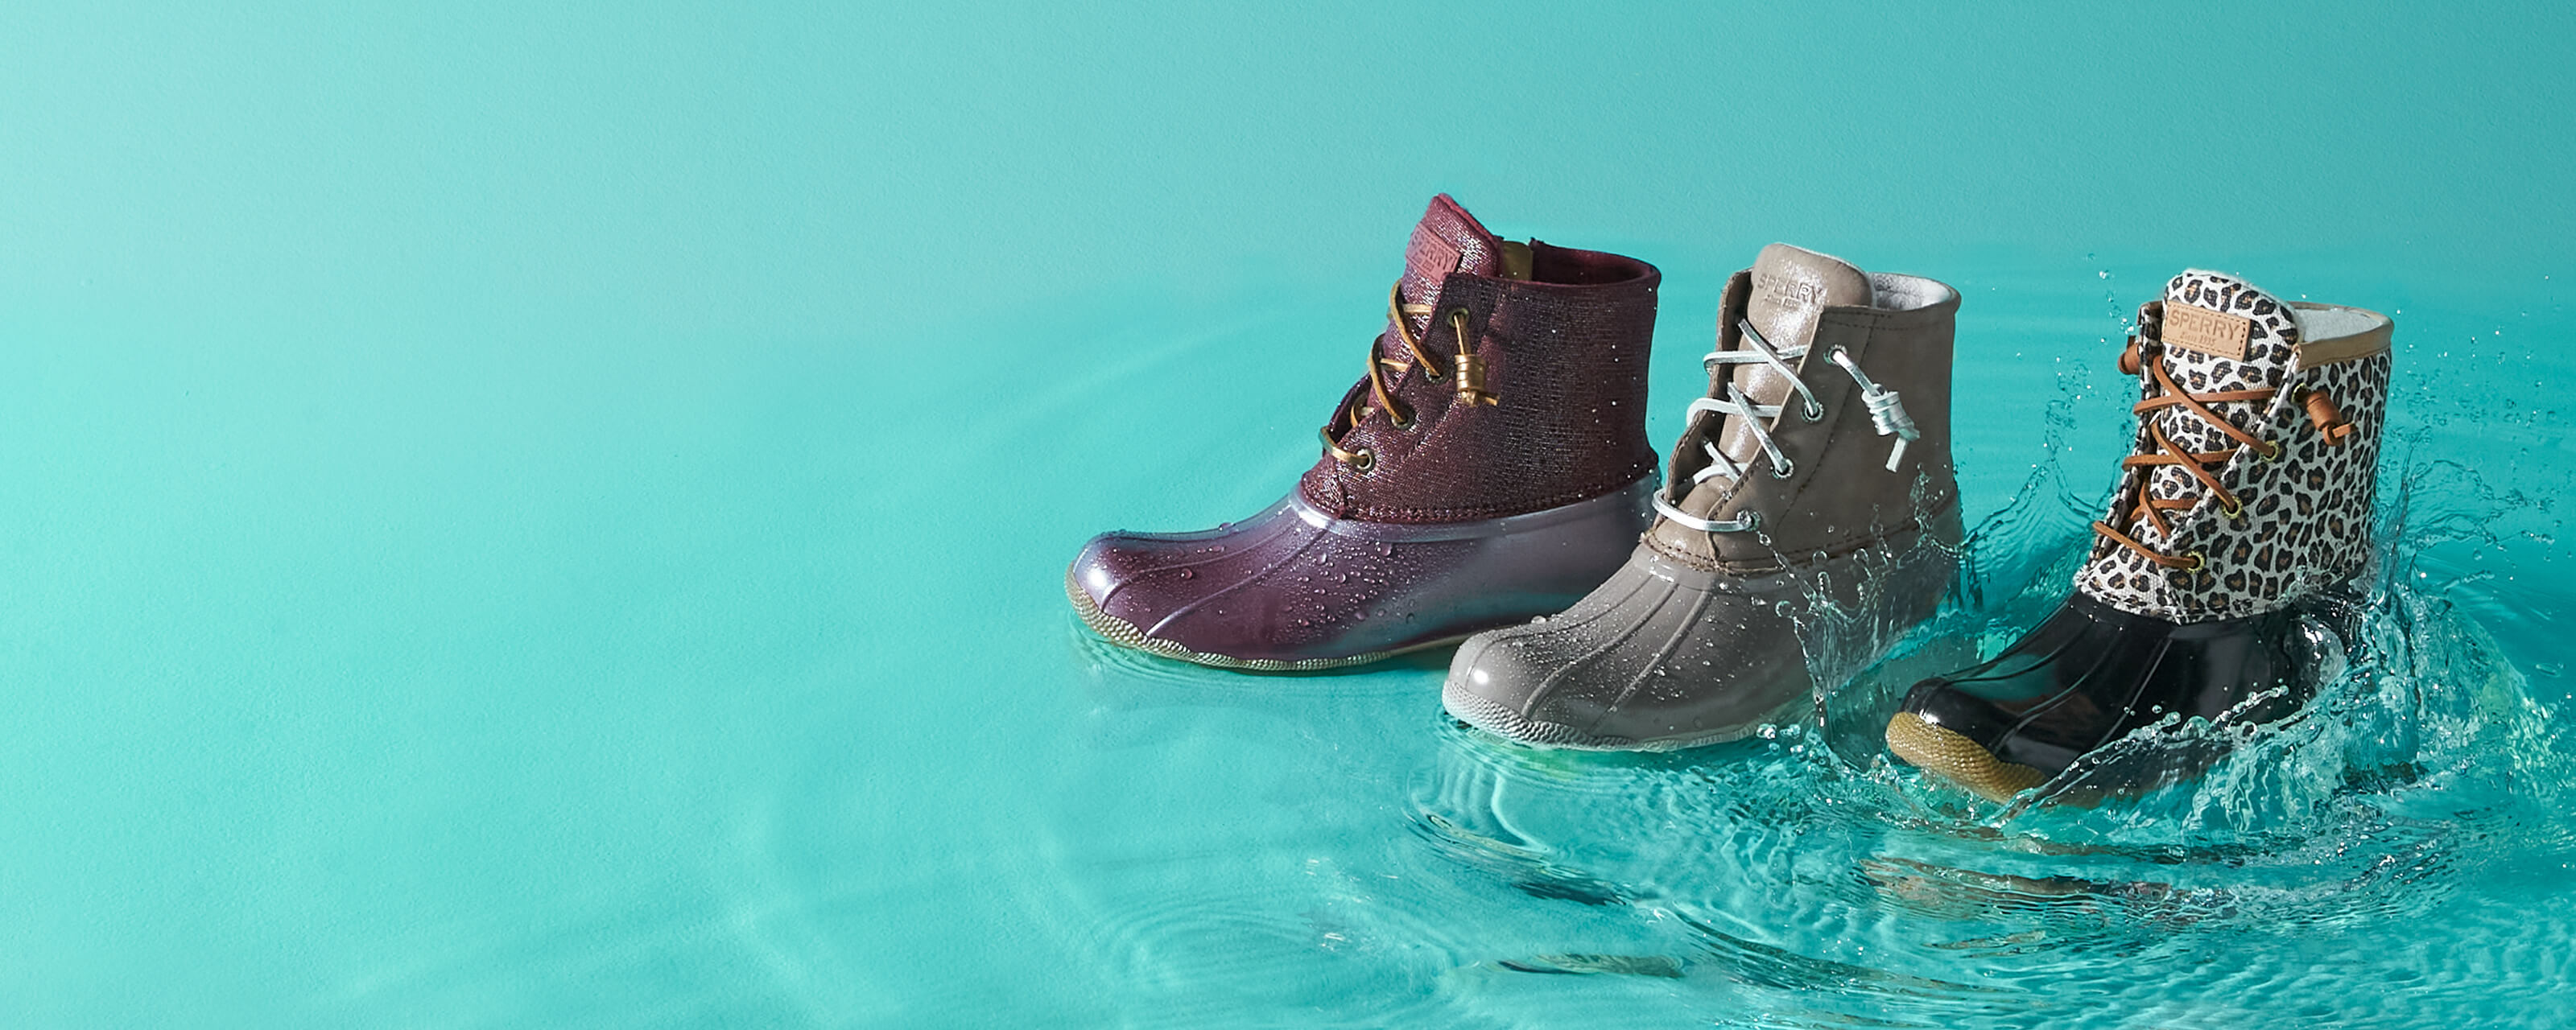 Three Saltwater boots standing in a puddle.